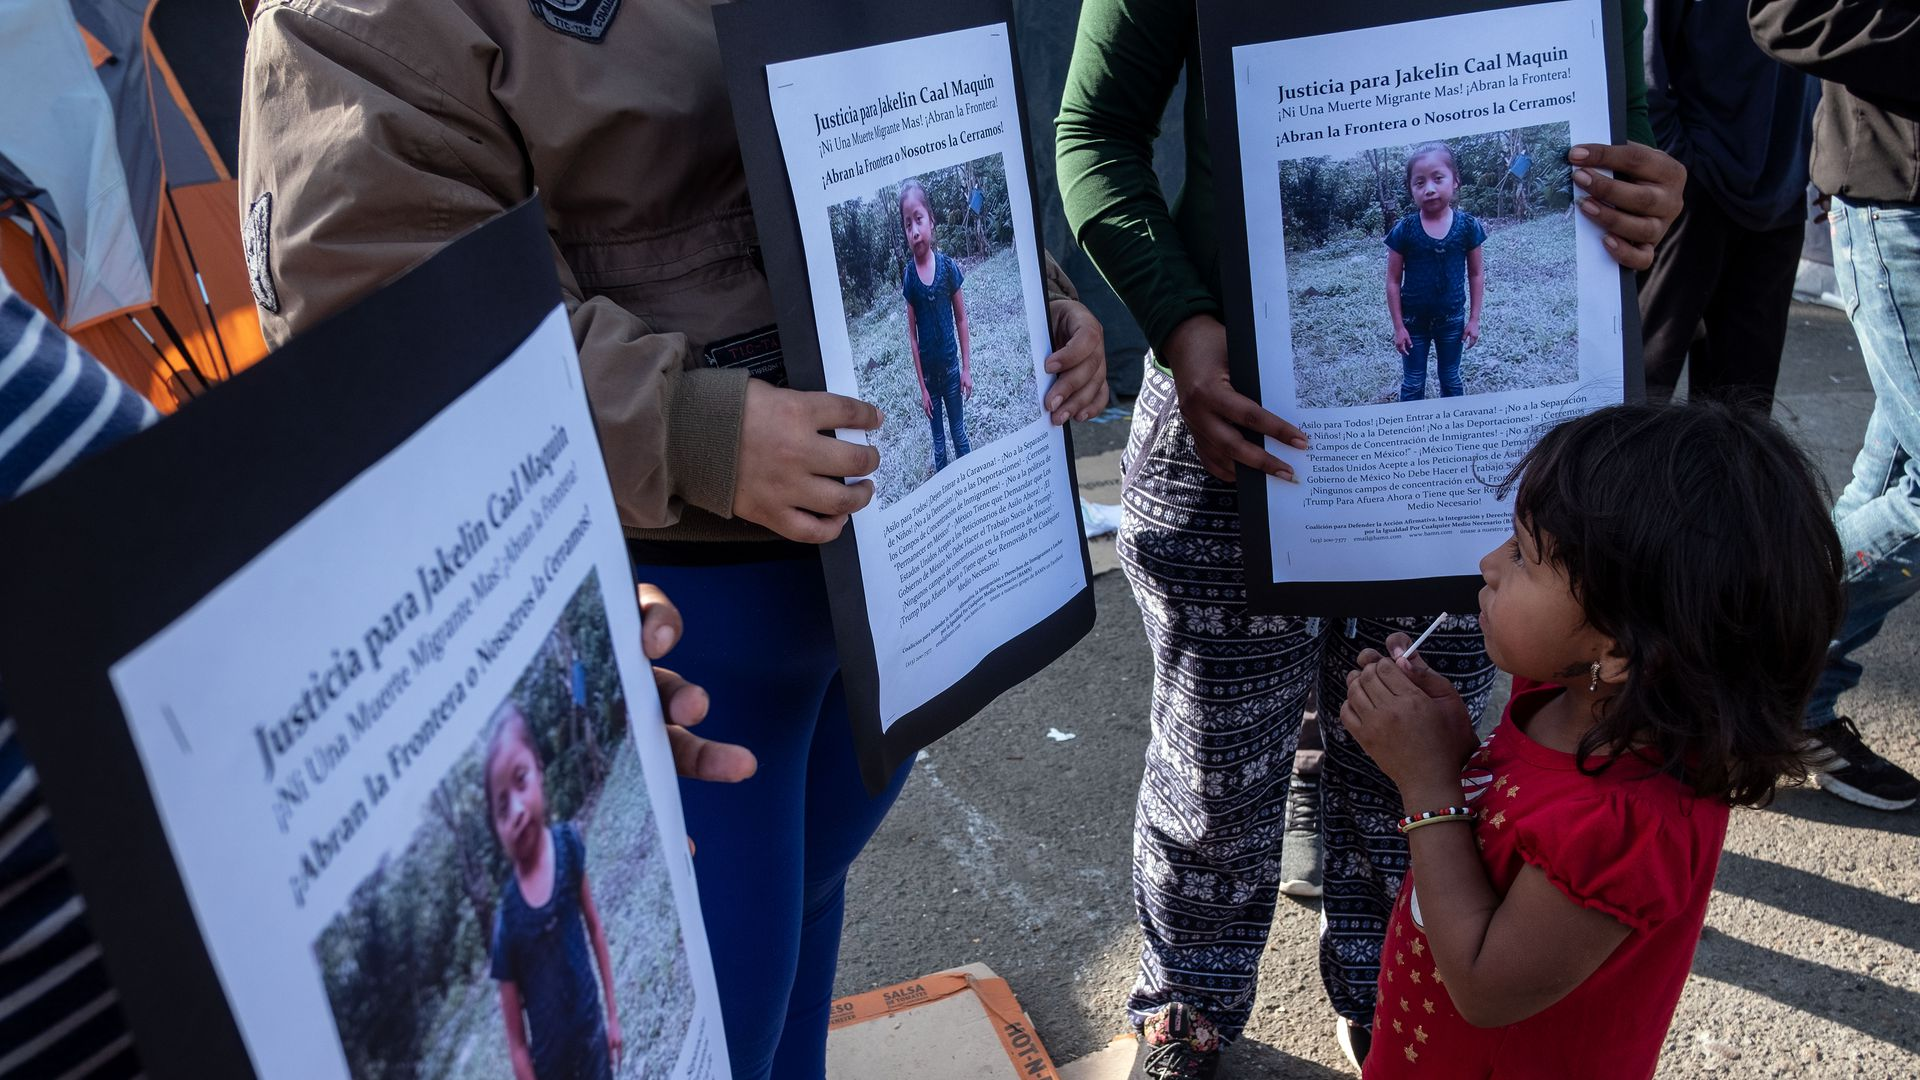 In this image, a child stands in front of demonstrators who hold white text descriptions of missing persons.